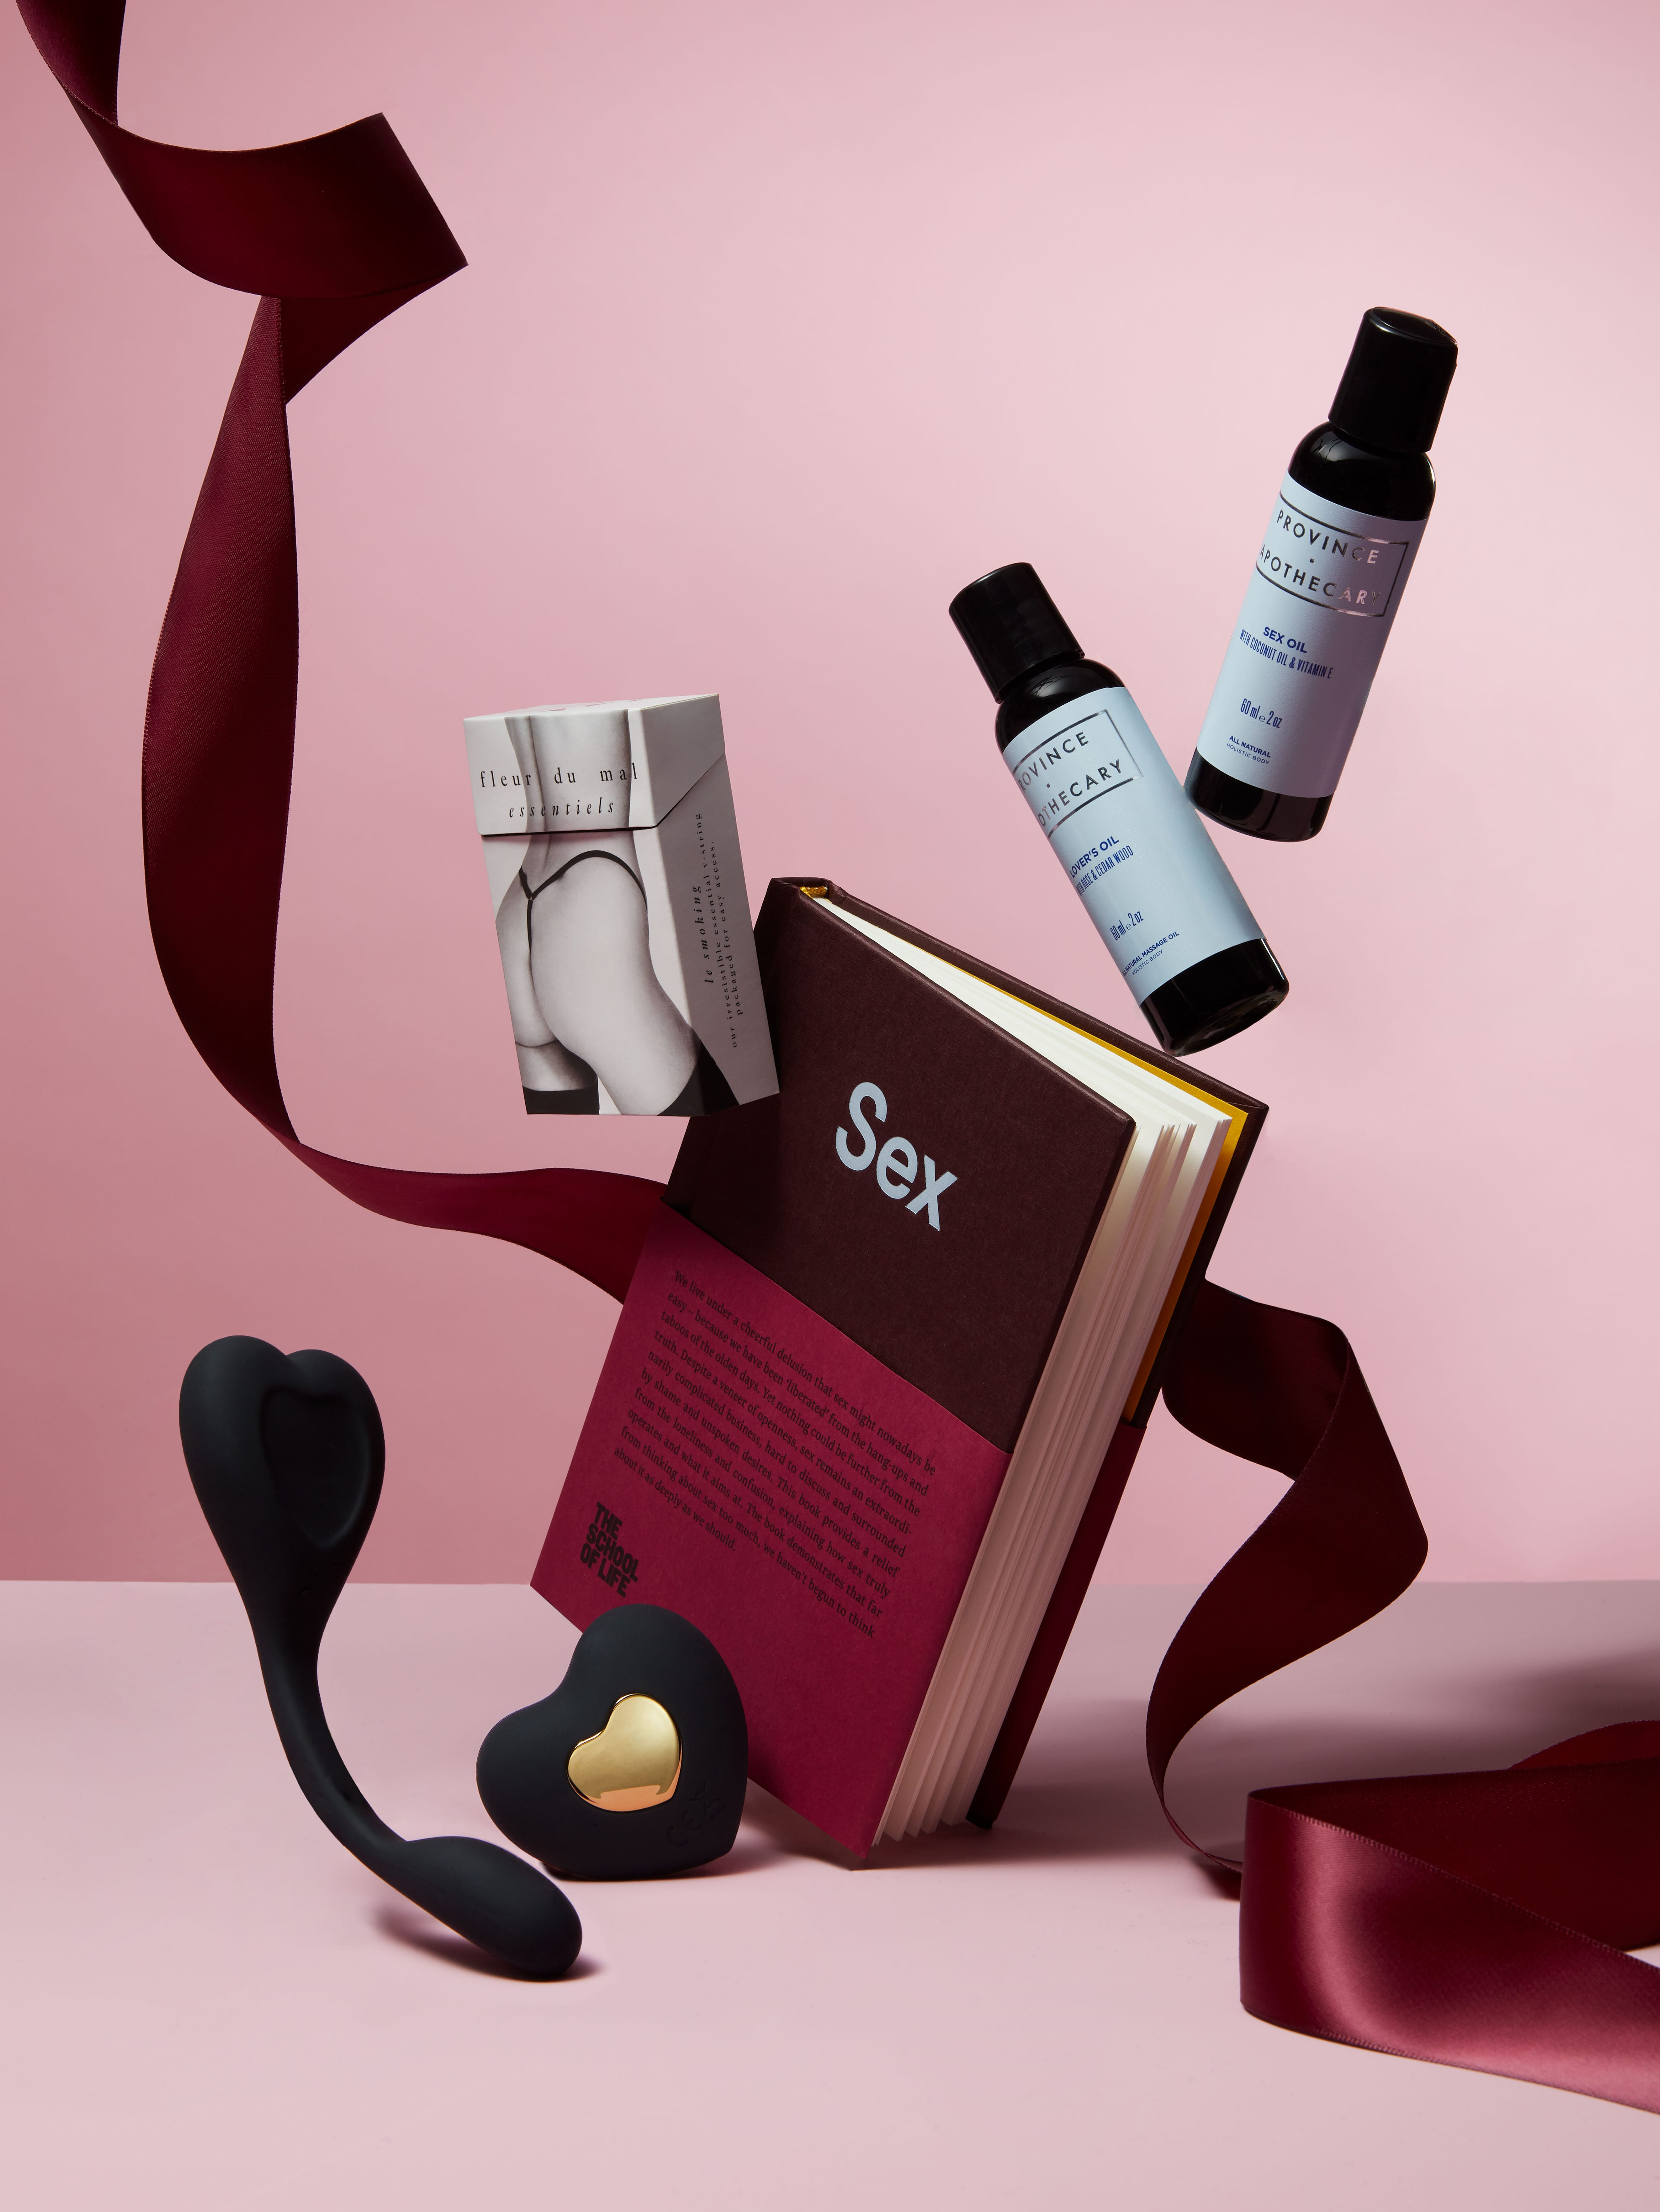 The Lover's Gift Guide